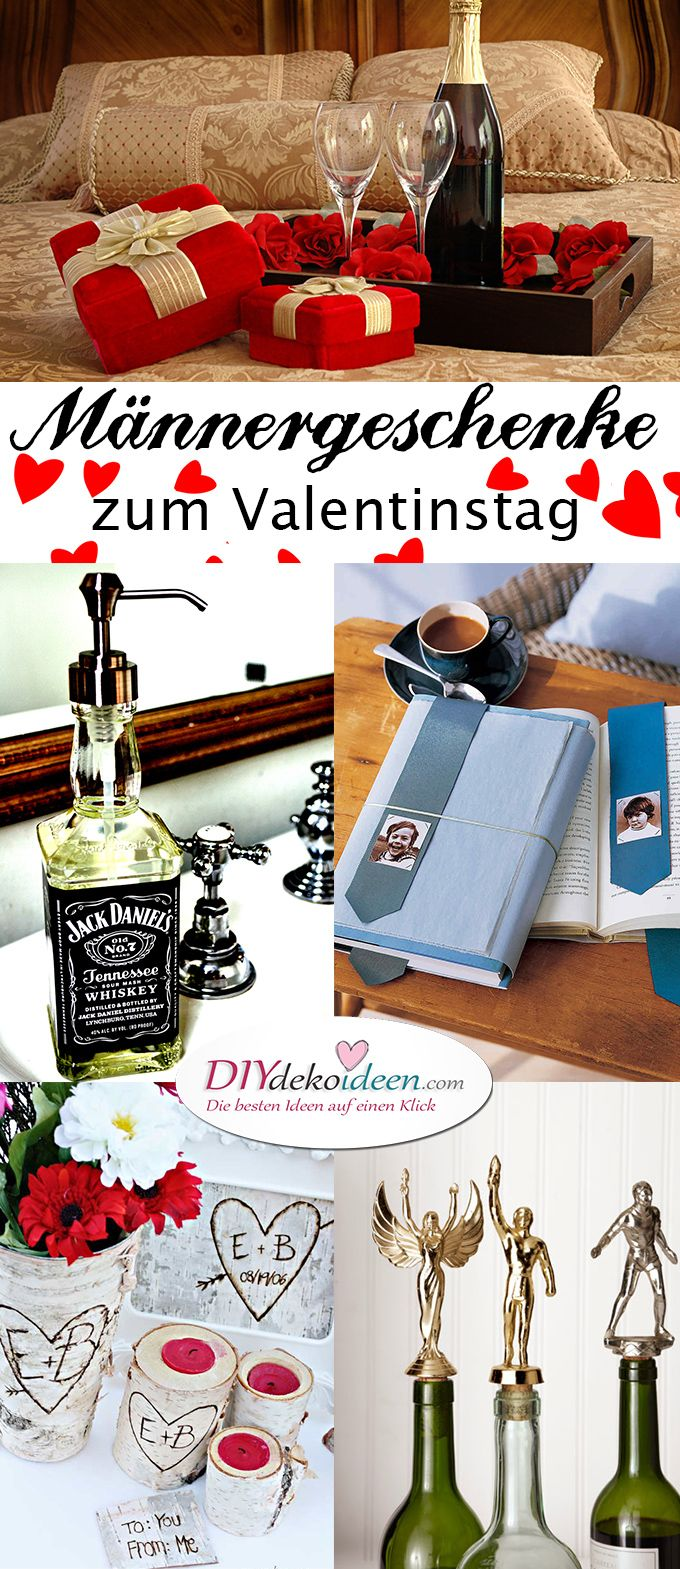 kreative diy bastelideen f r m nnergeschenke zum. Black Bedroom Furniture Sets. Home Design Ideas